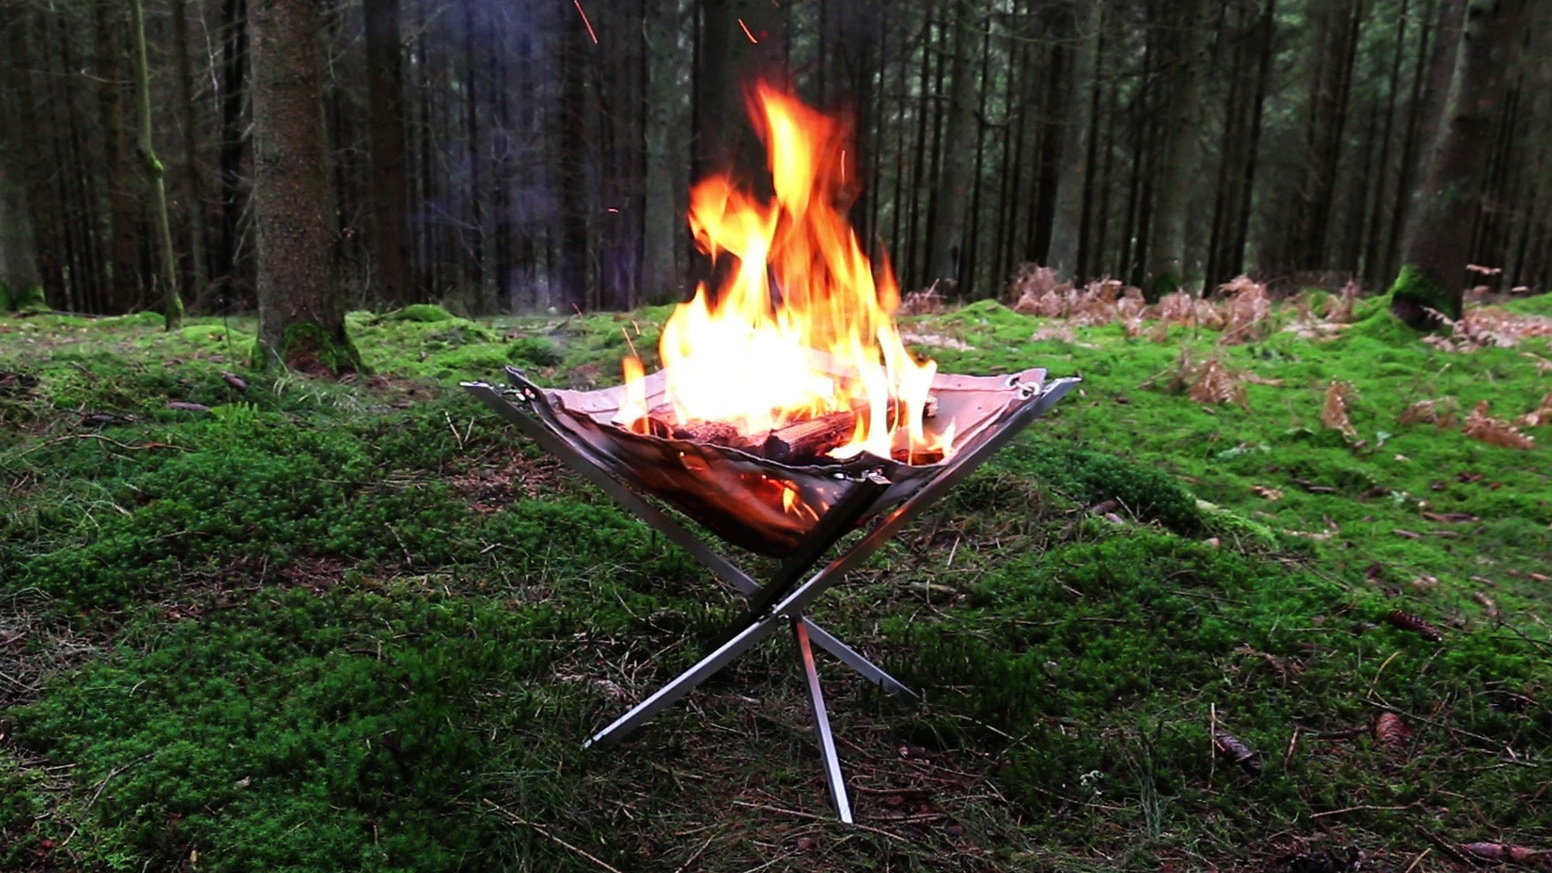 Enjoy the fire and cook outdside with friends and family.